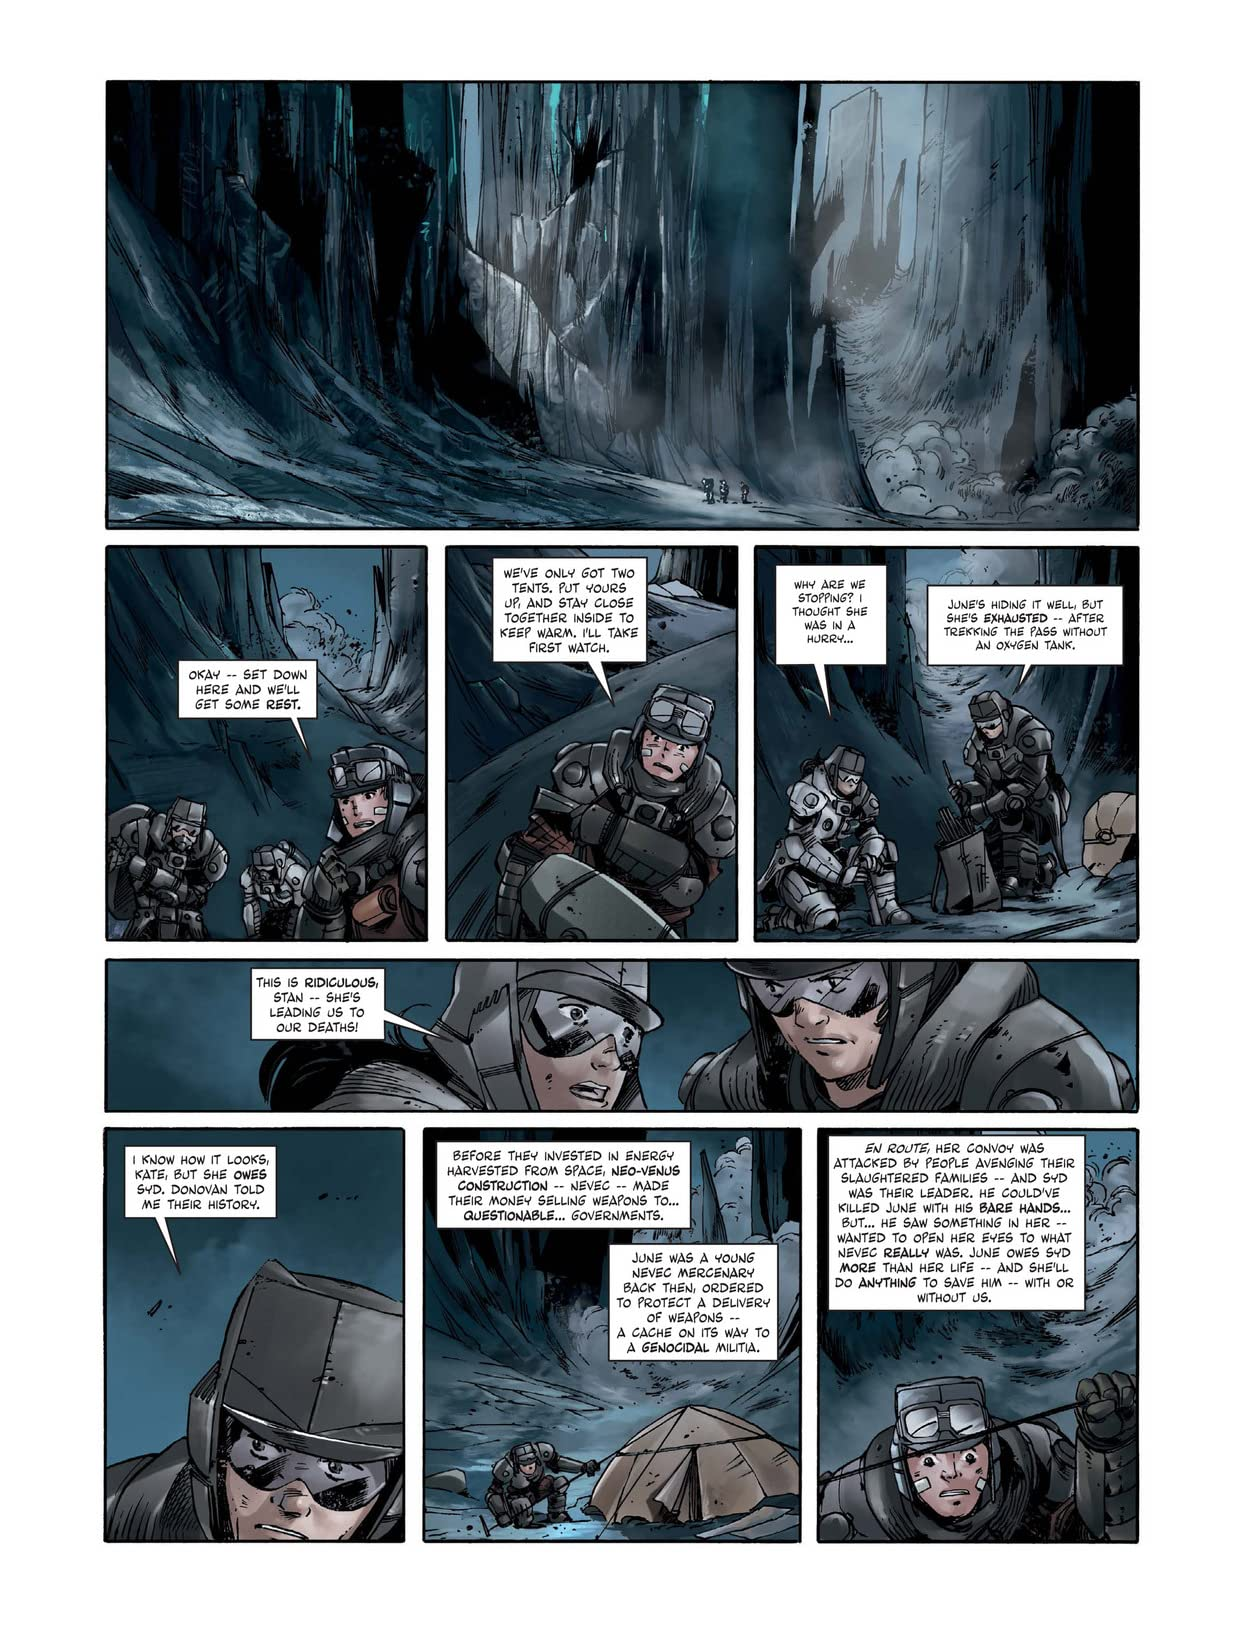 Lost Planet: First Colony #2 (of 2)